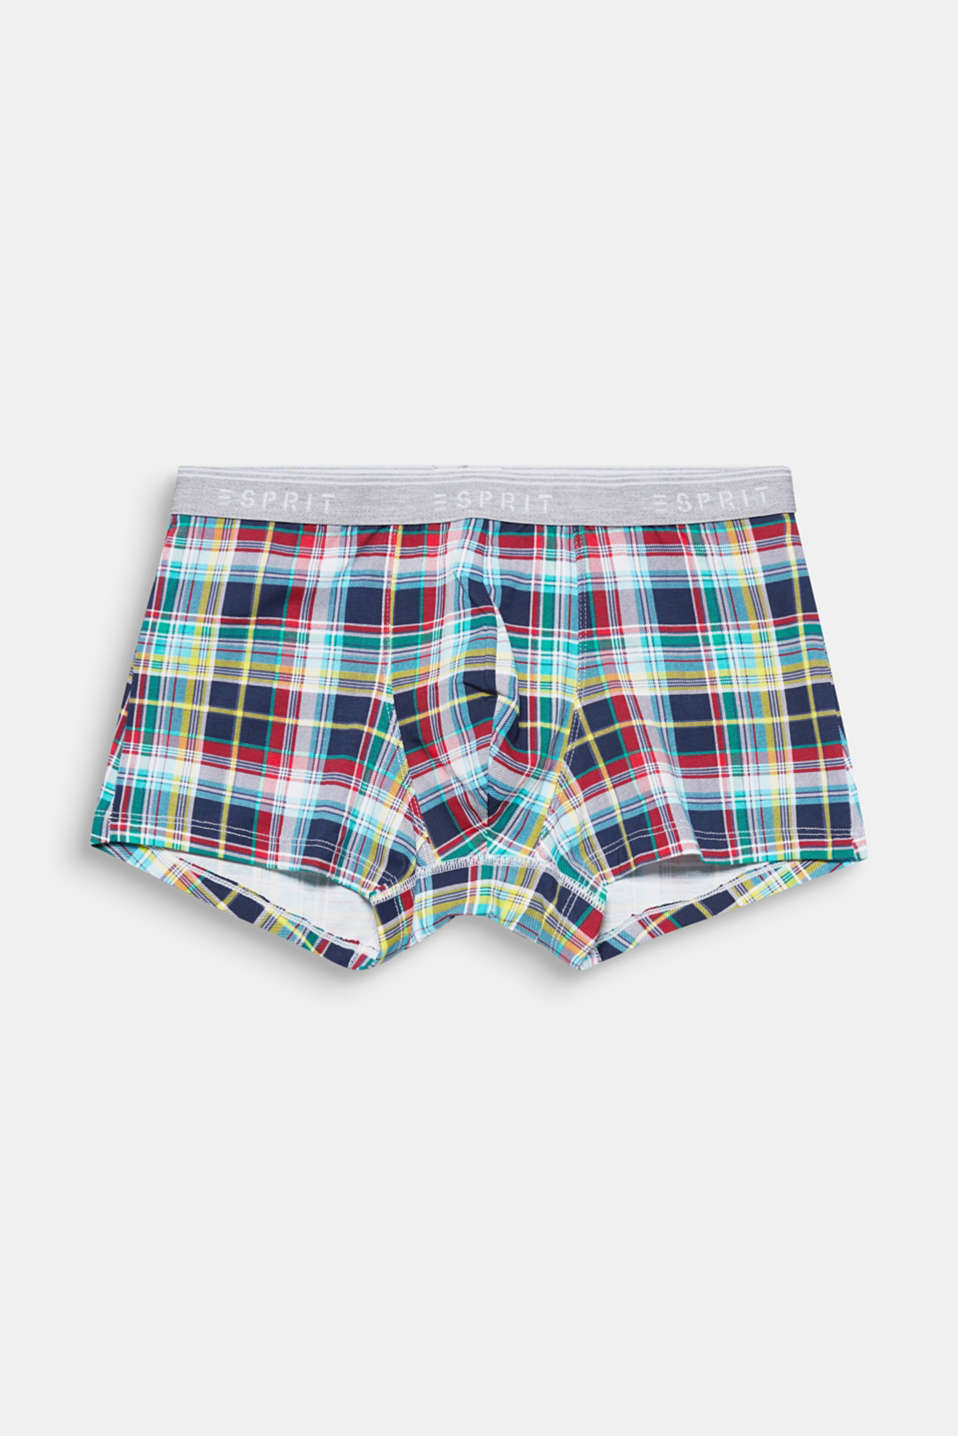 Multi-coloured checks give these jersey hipster shorts with an attached logo waistband their trendy look!